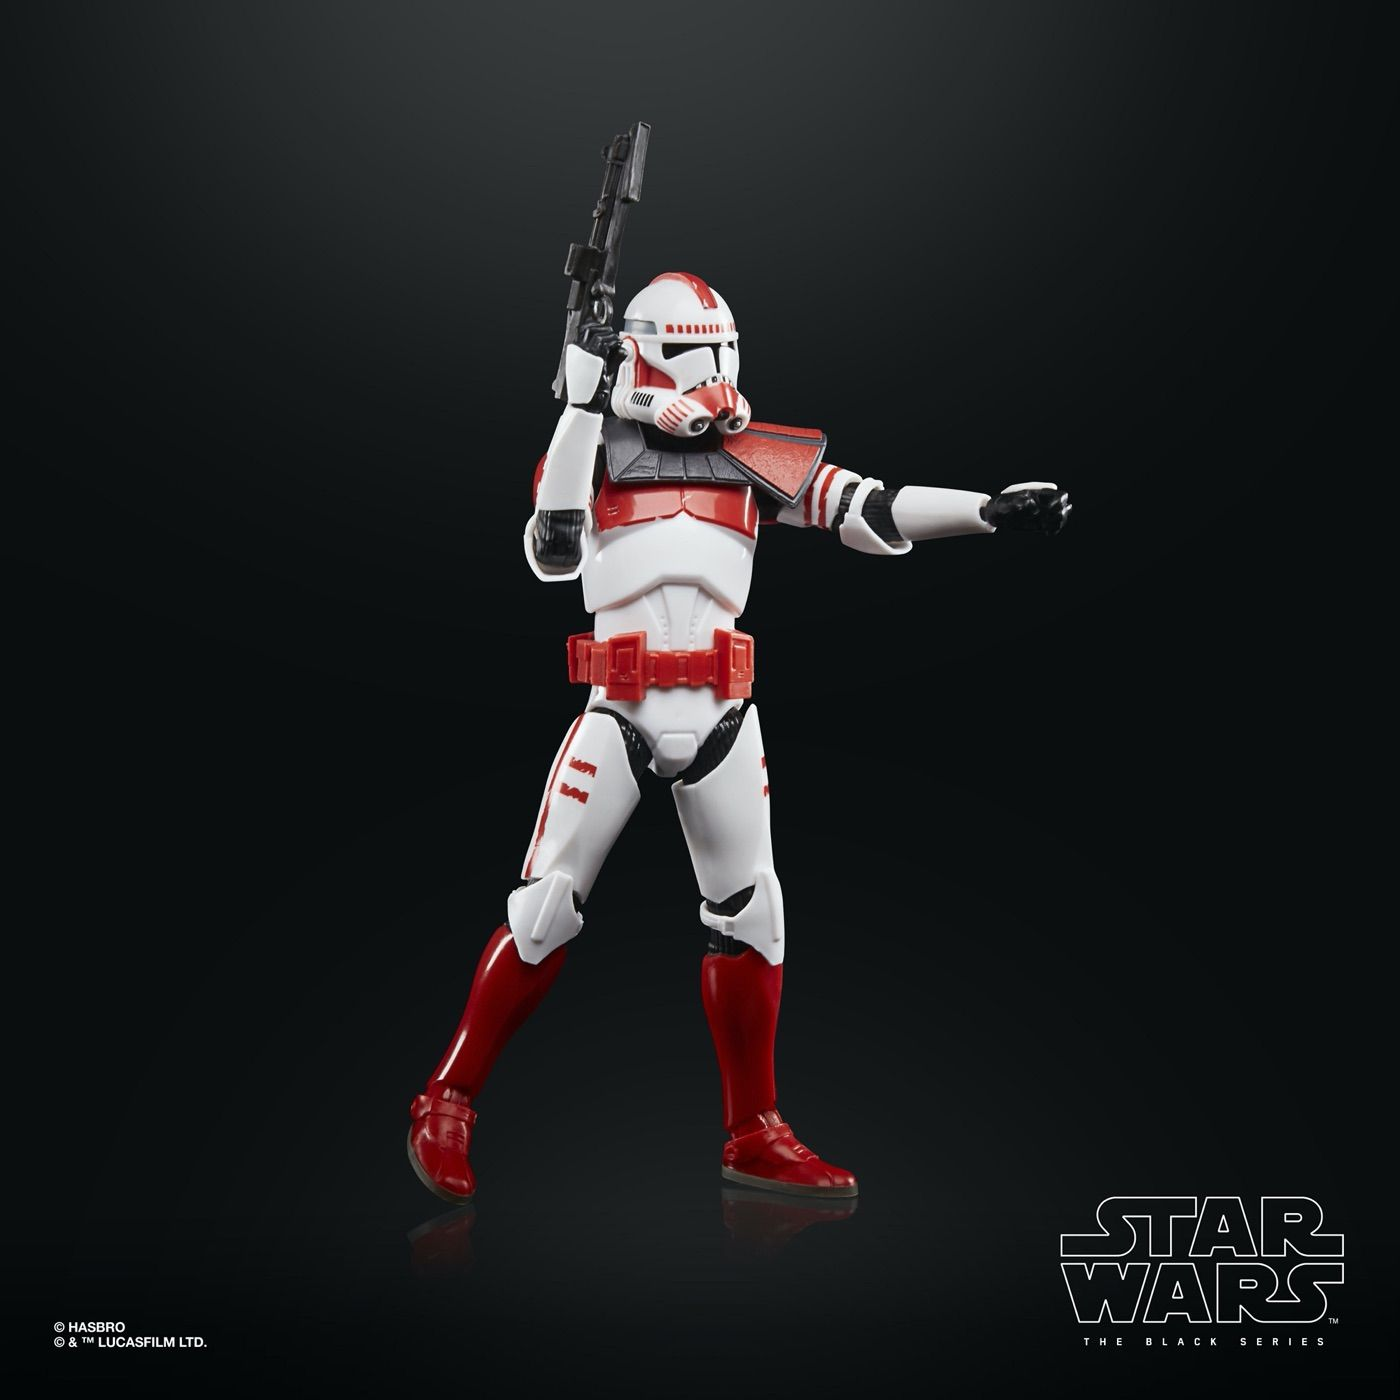 Star Wars: The Bad Batch Black Series Figures Unveiled by Hasbro